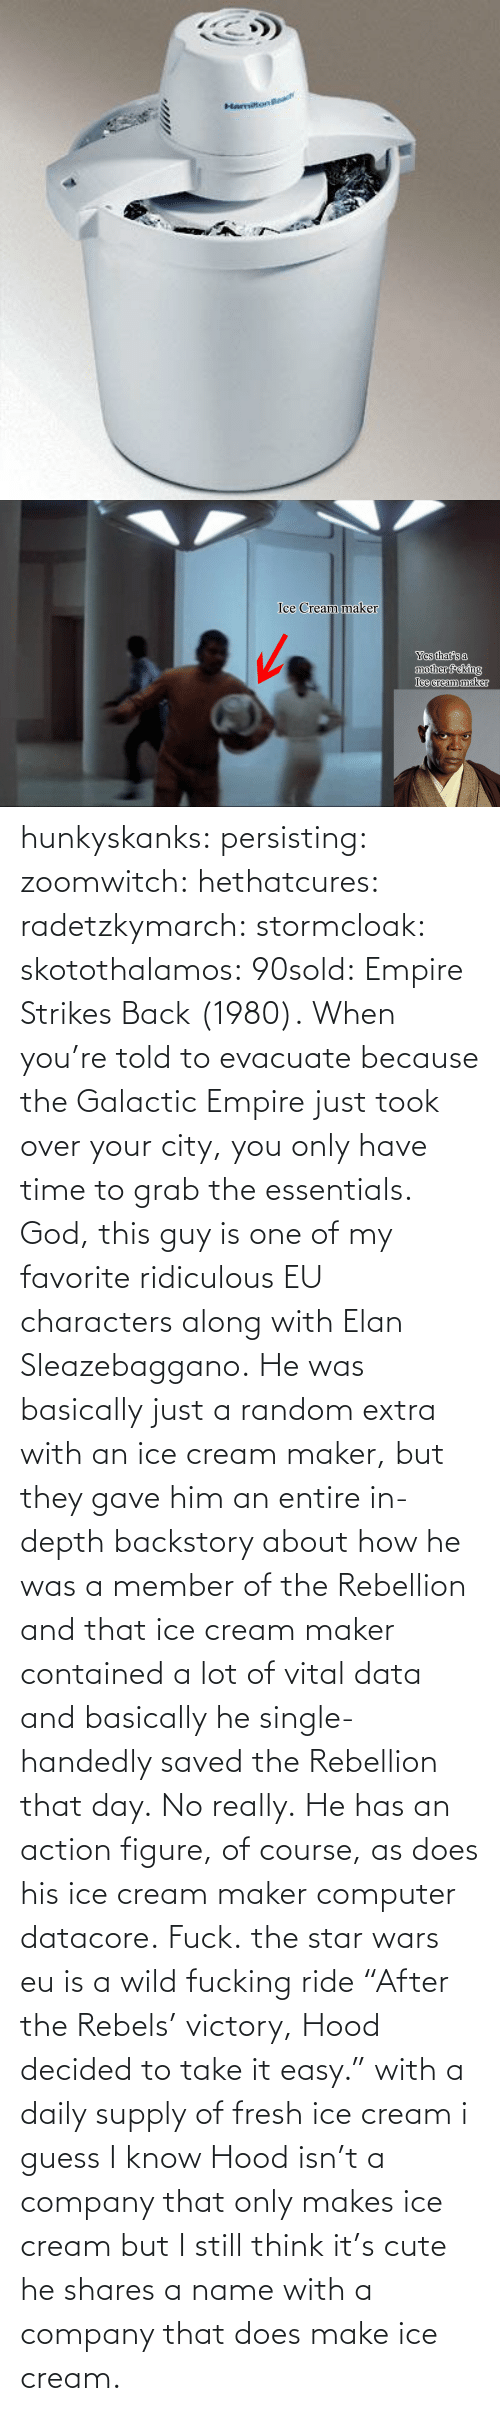 "In Depth: Hamiton   Ice Cream maker  Yes that's a  mother feking  Ice cream maker hunkyskanks:  persisting:  zoomwitch:  hethatcures:  radetzkymarch:  stormcloak:  skotothalamos:  90sold:  Empire Strikes Back (1980).  When you're told to evacuate because the Galactic Empire just took over your city, you only have time to grab the essentials.  God, this guy is one of my favorite ridiculous EU characters along with Elan Sleazebaggano. He was basically just a random extra with an ice cream maker, but they gave him an entire in-depth backstory about how he was a member of the Rebellion and that ice cream maker contained a lot of vital data and basically he single-handedly saved the Rebellion that day. No really.  He has an action figure, of course, as does his ice cream maker computer datacore.  Fuck.  the star wars eu is a wild fucking ride  ""After the Rebels' victory, Hood decided to take it easy."" with a daily supply of fresh ice cream i guess  I know Hood isn't a company that only makes ice cream but I still think it's cute he shares a name with a company that does make ice cream."